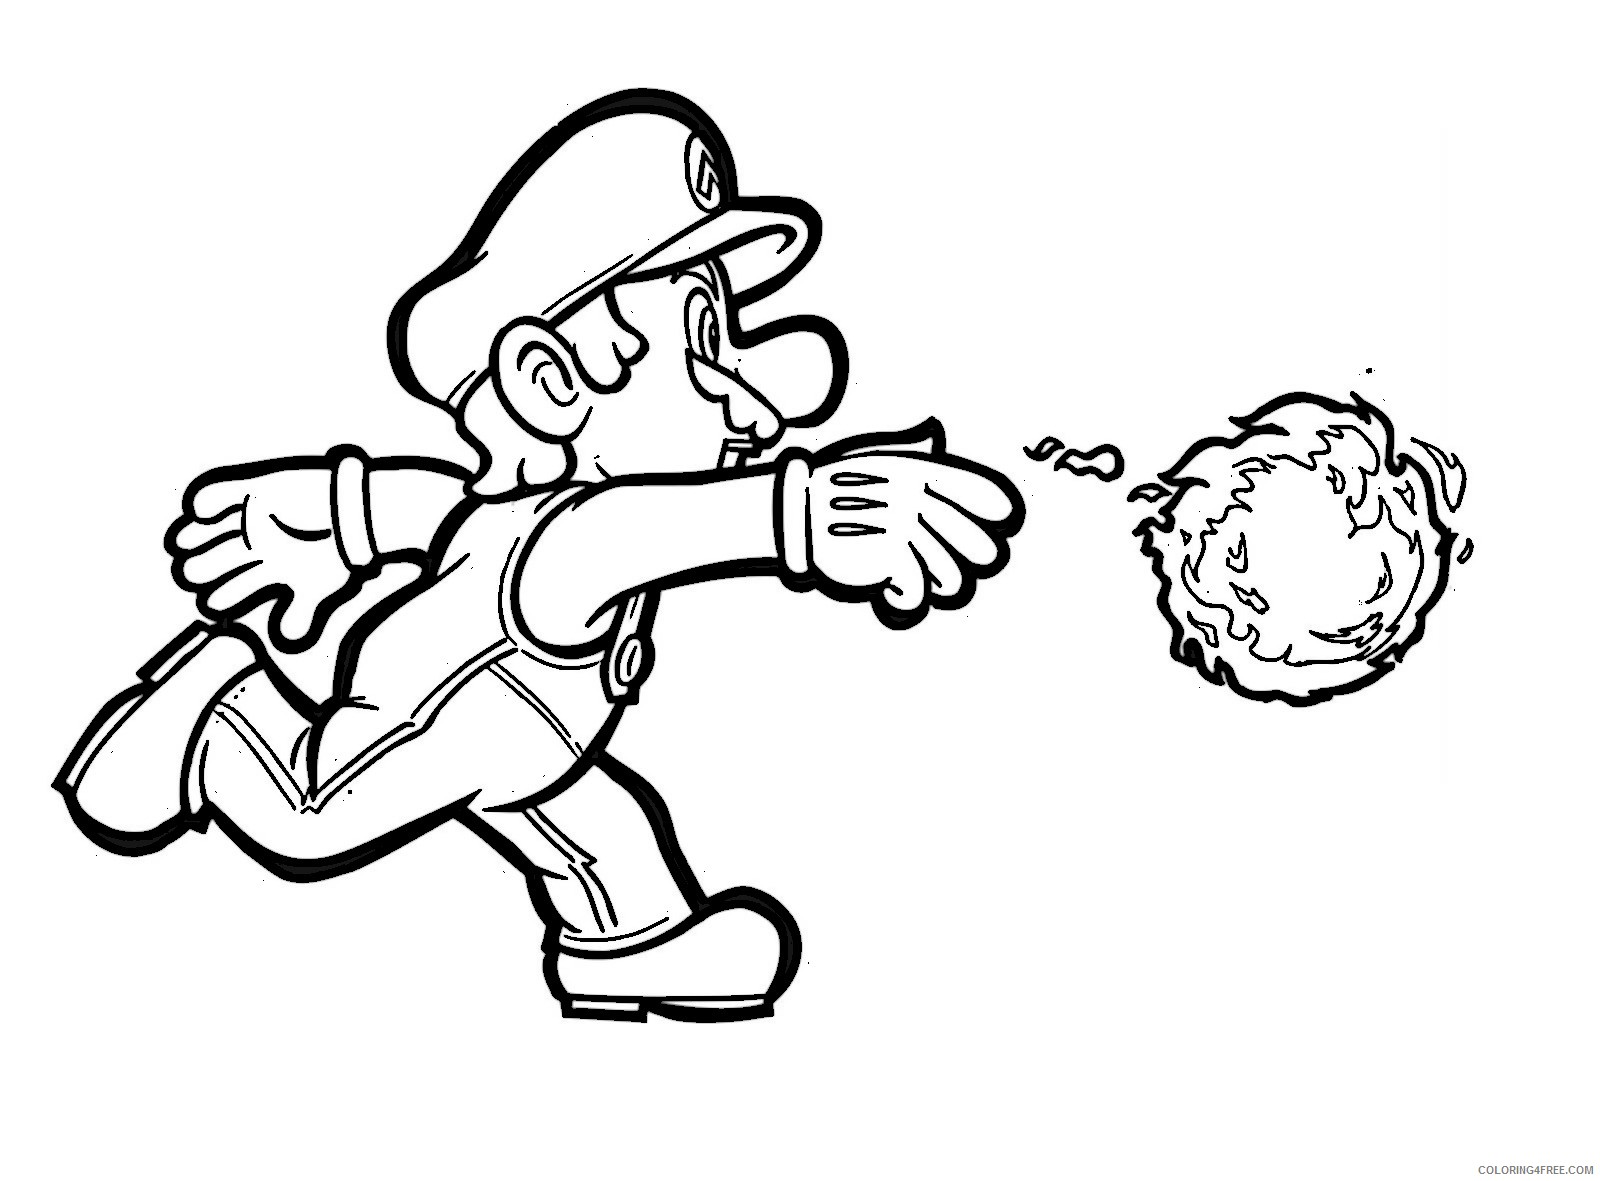 Printable Mario Coloring Pages For Kids Coloring4free Coloring4free Com